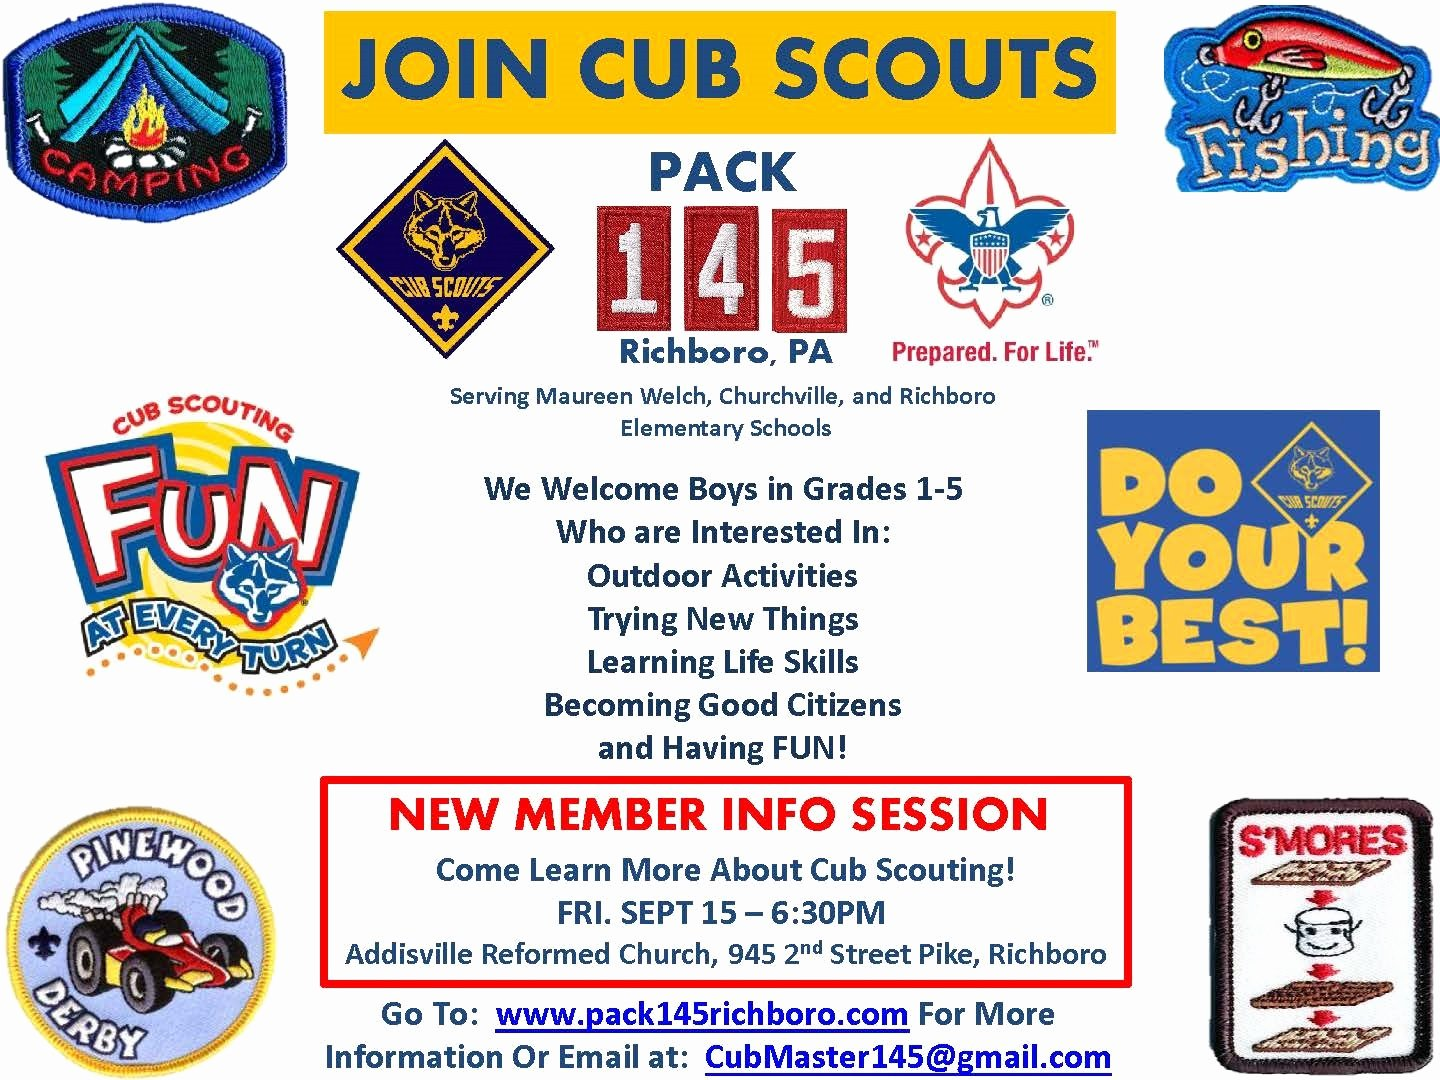 Cub Scout Flyer Template Awesome Richboro E Friday Folder Overview